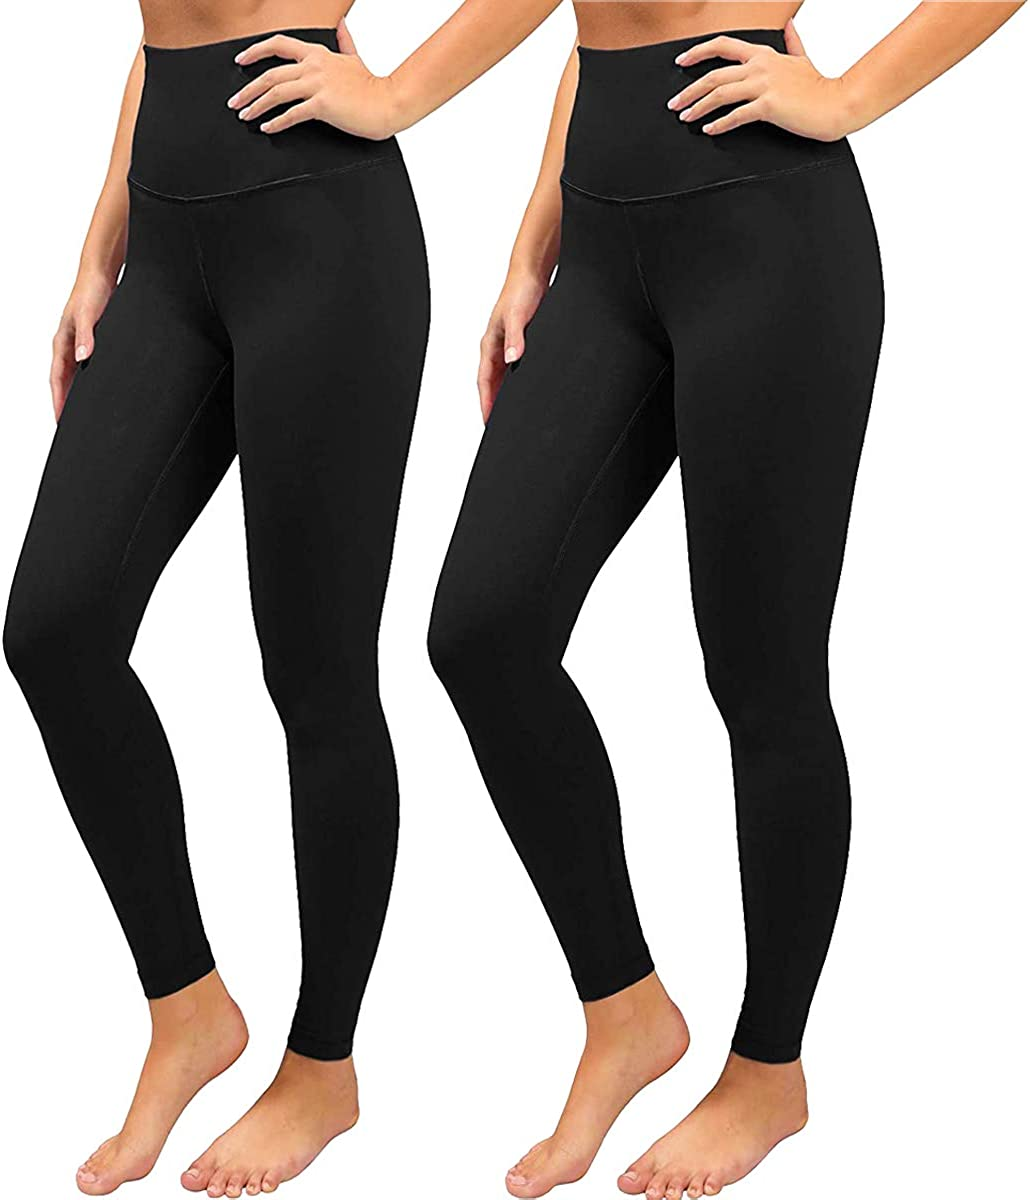 Black Leggings for Women-High Waisted Soft Tummy Control Workout Yoga Pants-Plus Size&Warm: Clothing